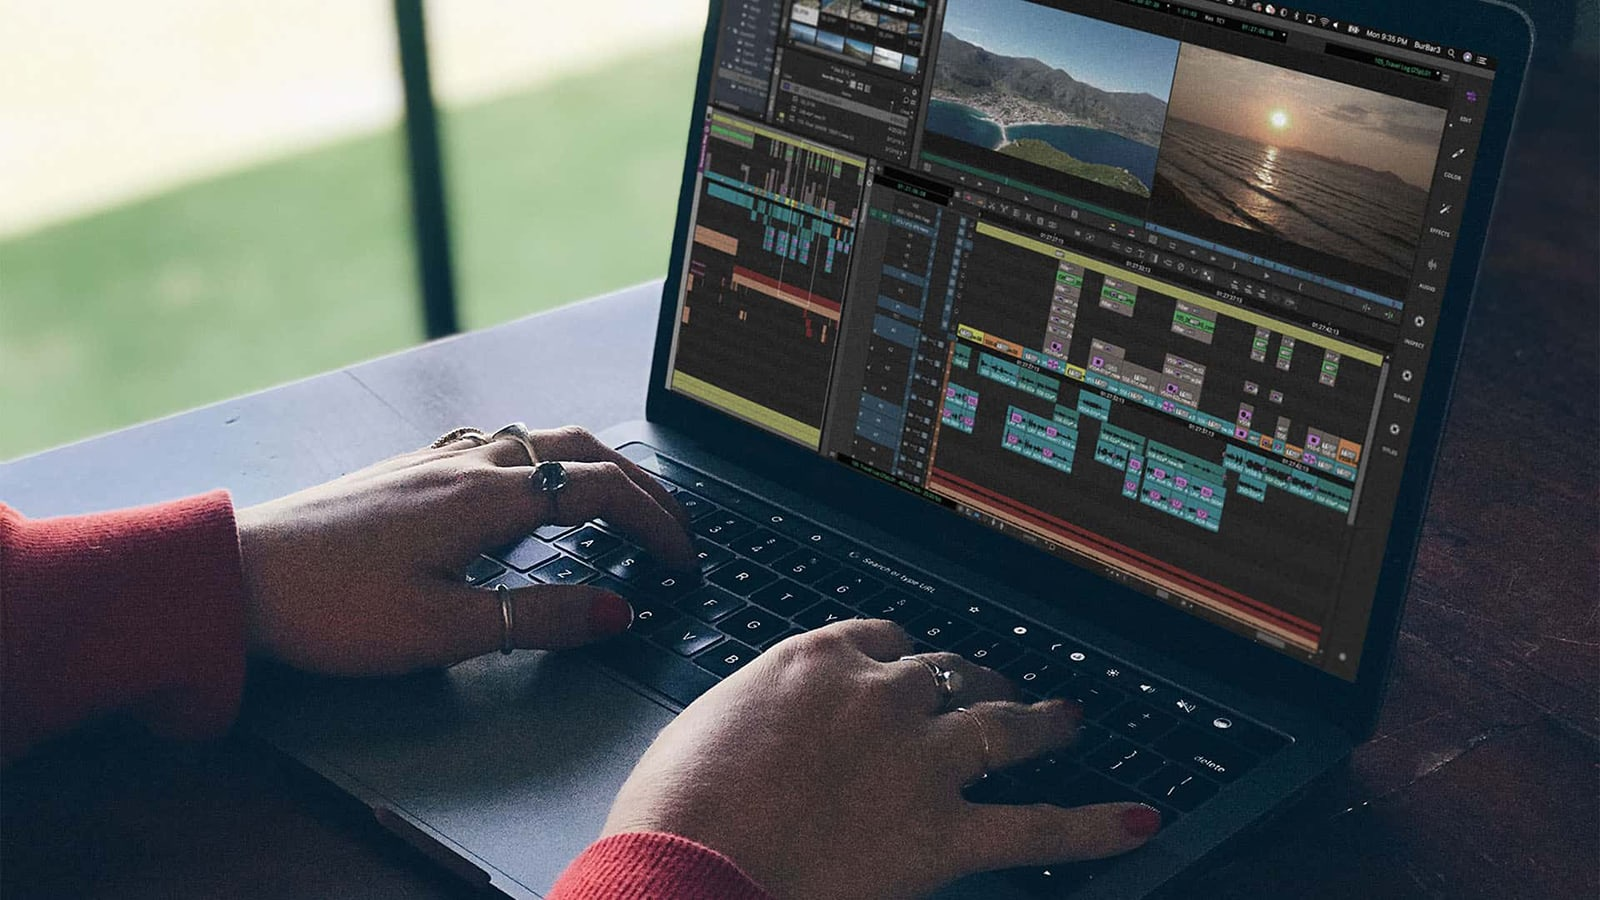 Hands on a laptop keyboard, we can see editing software open as someone works across a sunset over the sea and an arial shot of mountains.